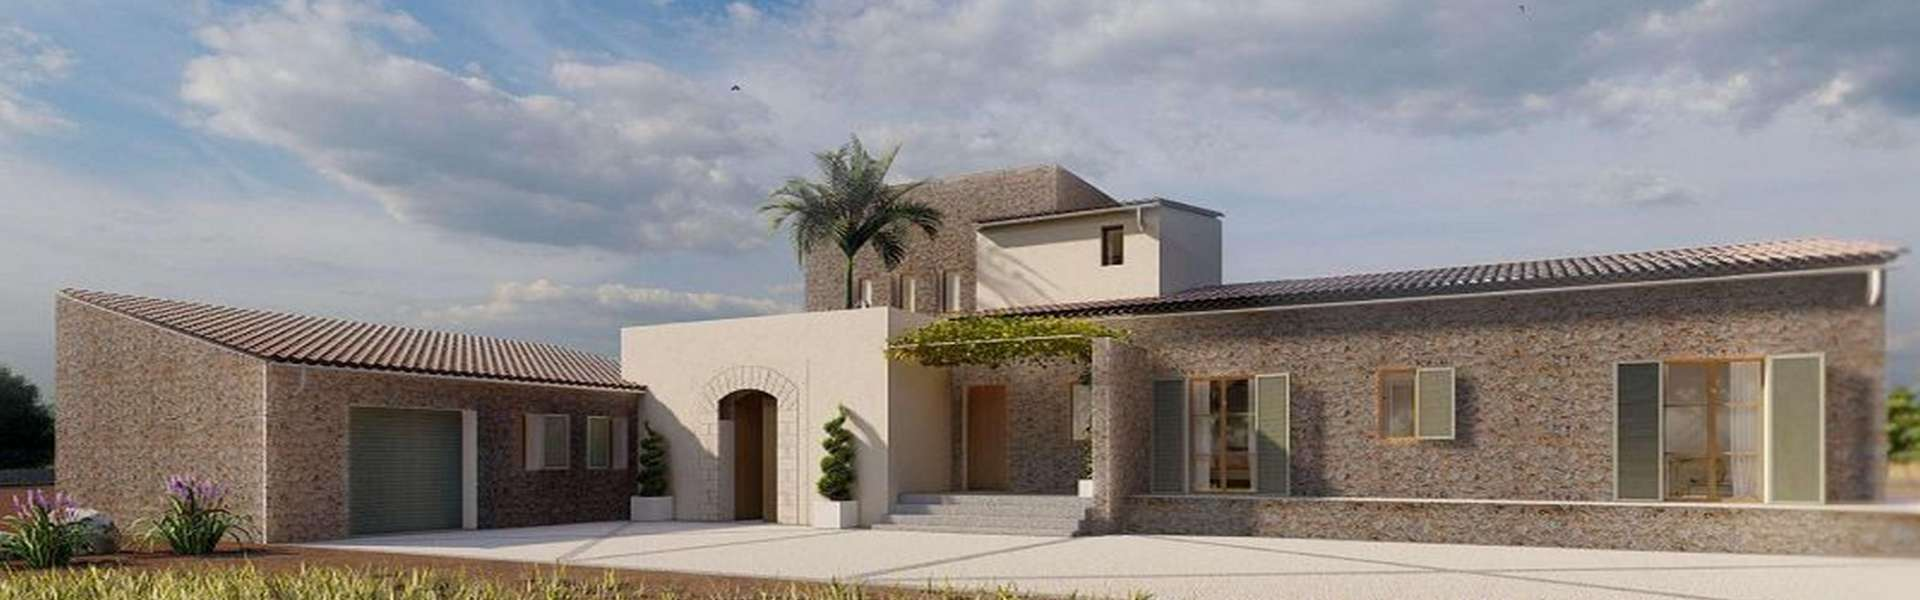 New construction project near Ses Salines